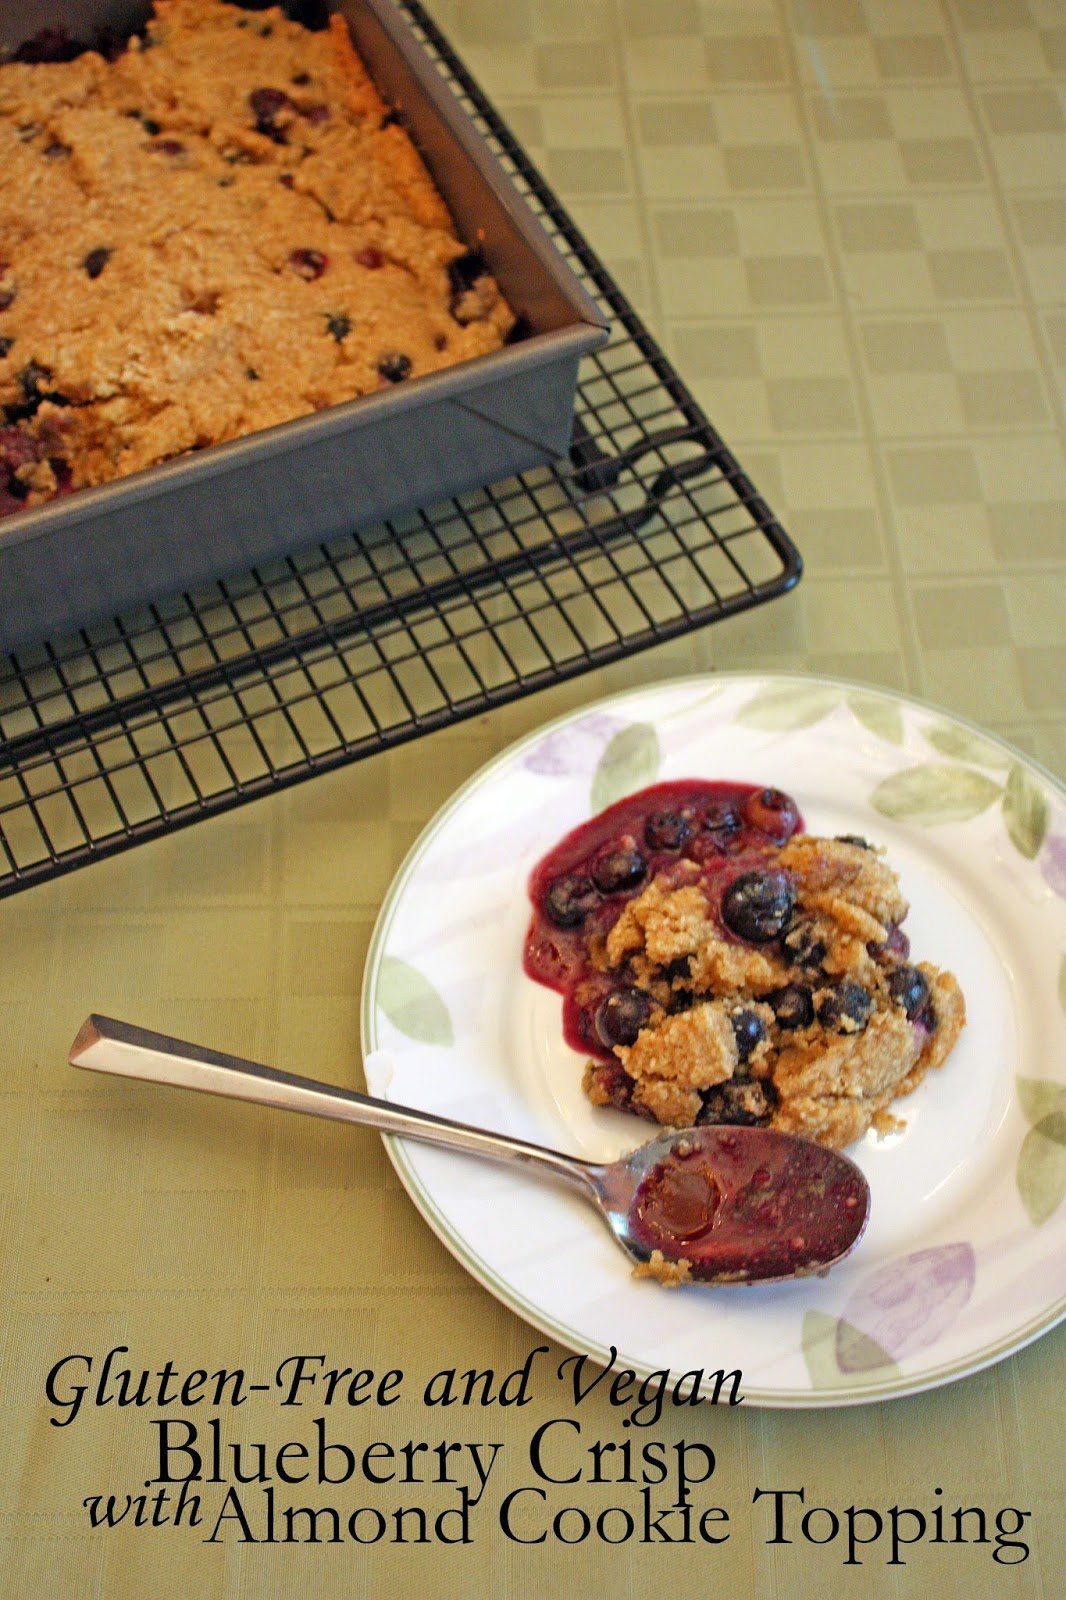 lemon blueberry crisp with almond cookie topping (gluten-free and vegan)